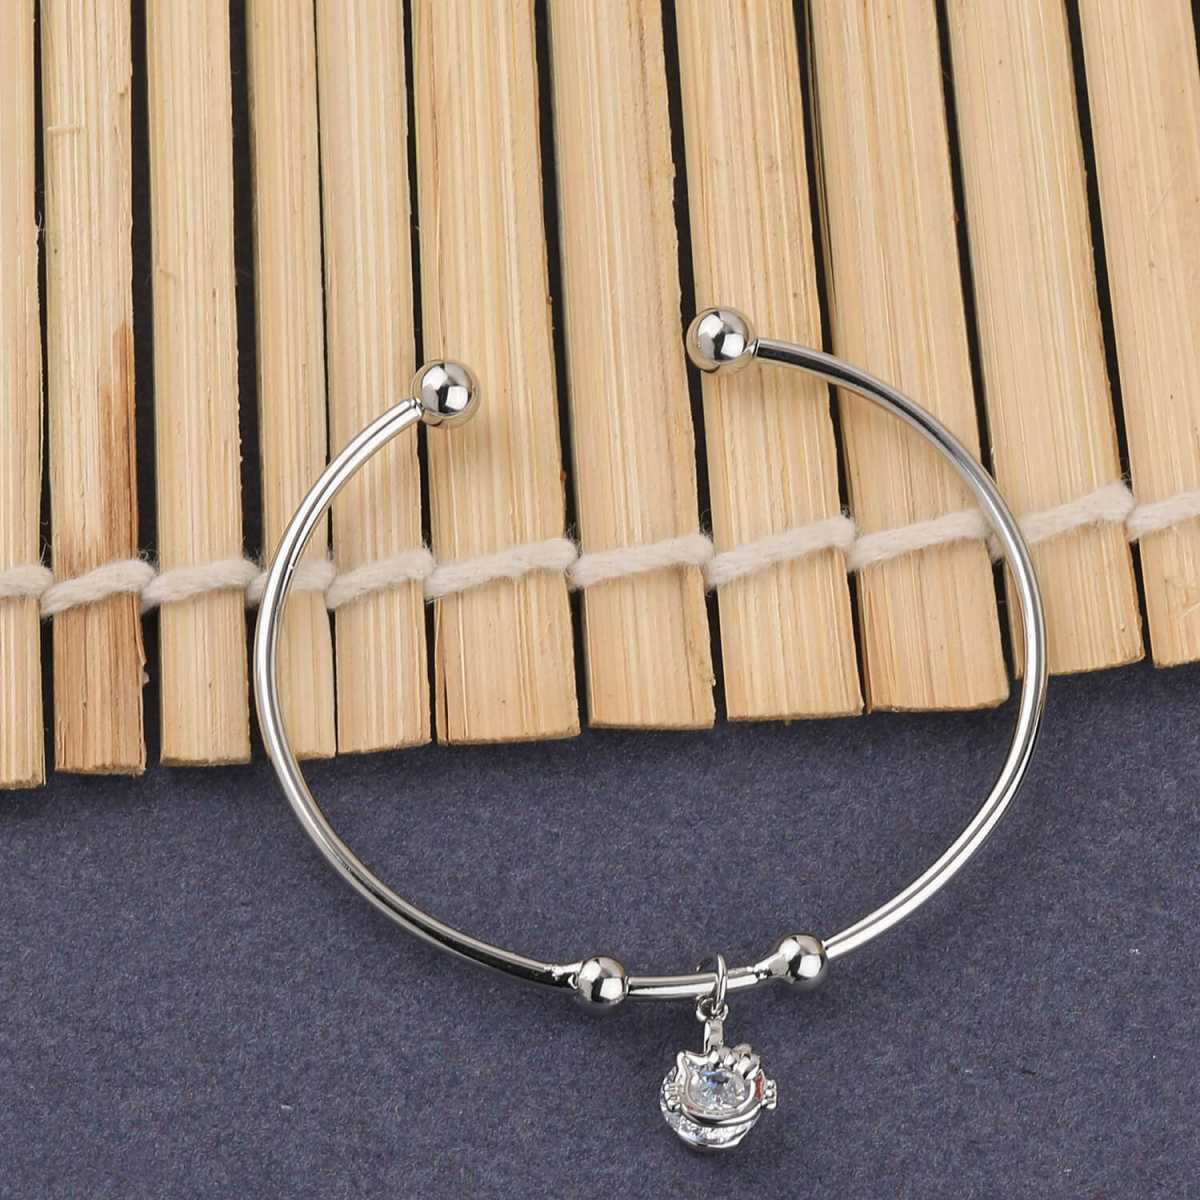 SILVER SHINE Stylish Delicated  Adjustable Bracelet With Daimond For Women Girls